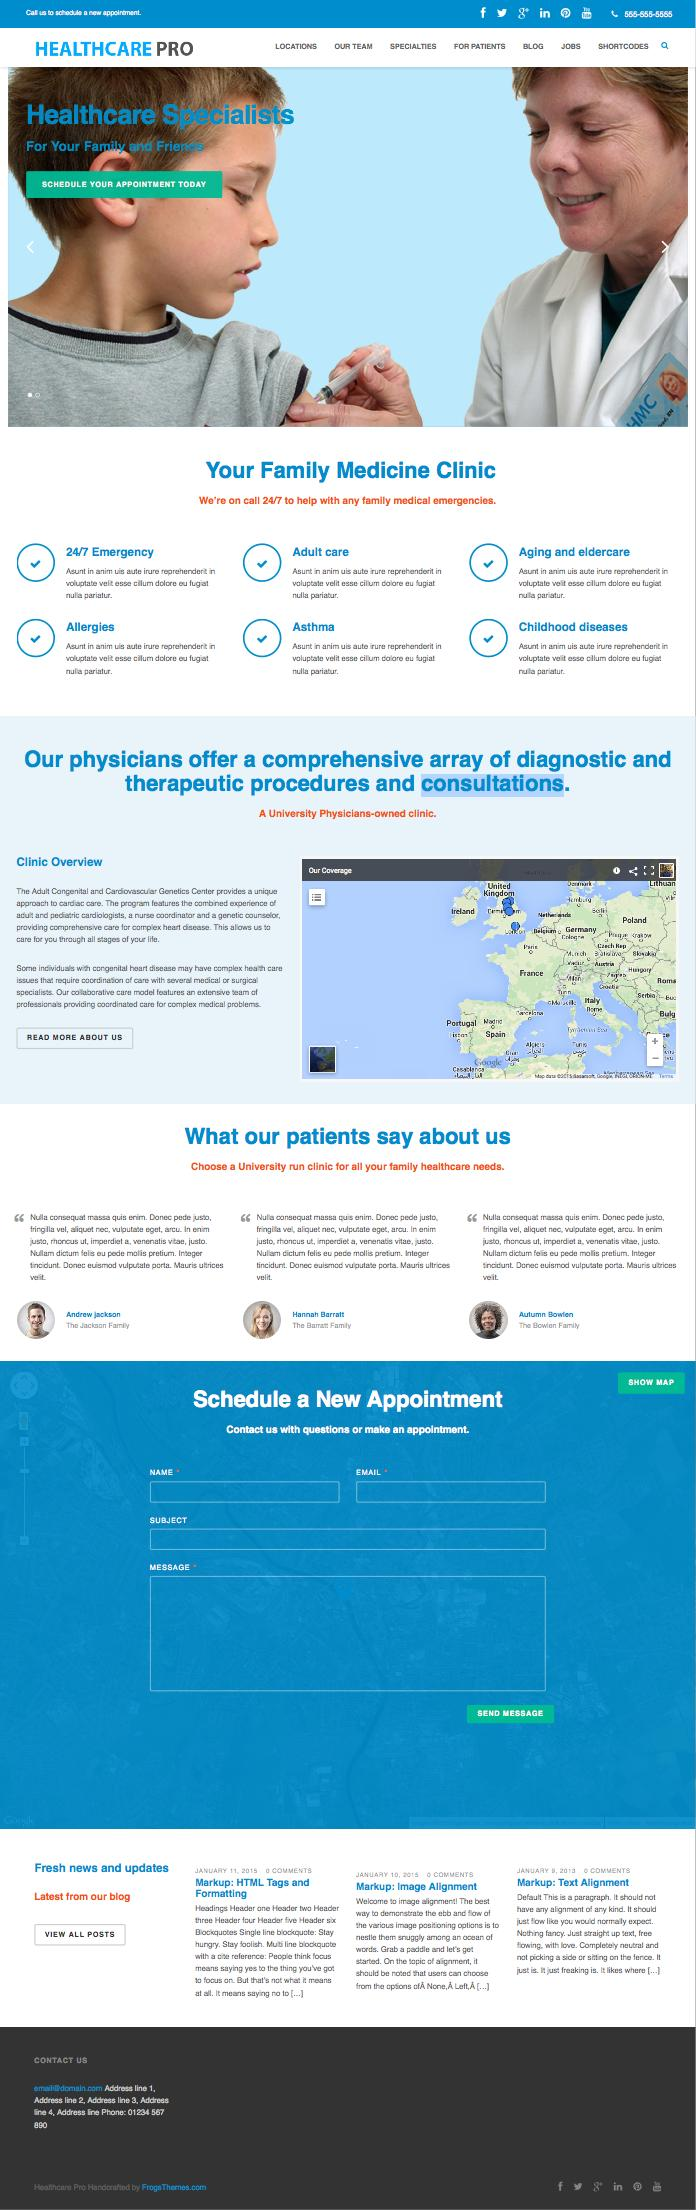 Healthcare Pro WordPress Medical Theme